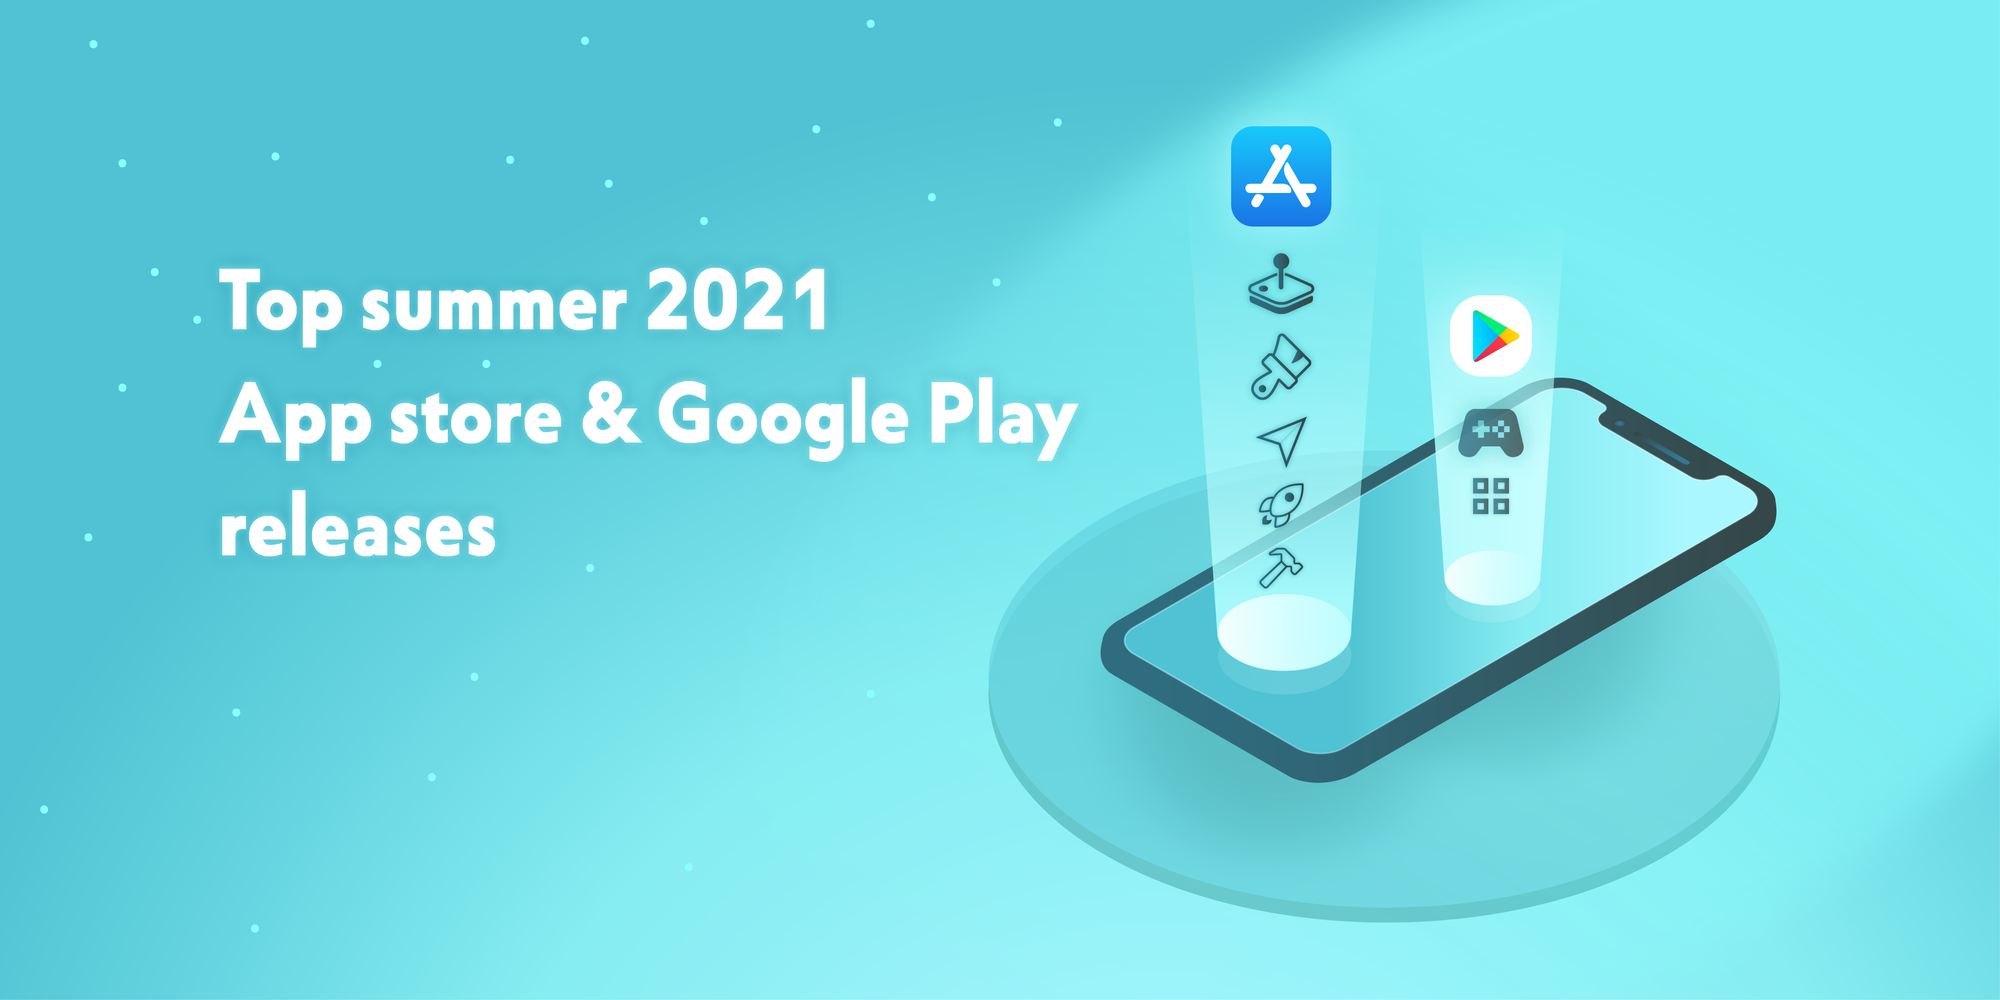 Top summer 2021 App Store & Google Play releases